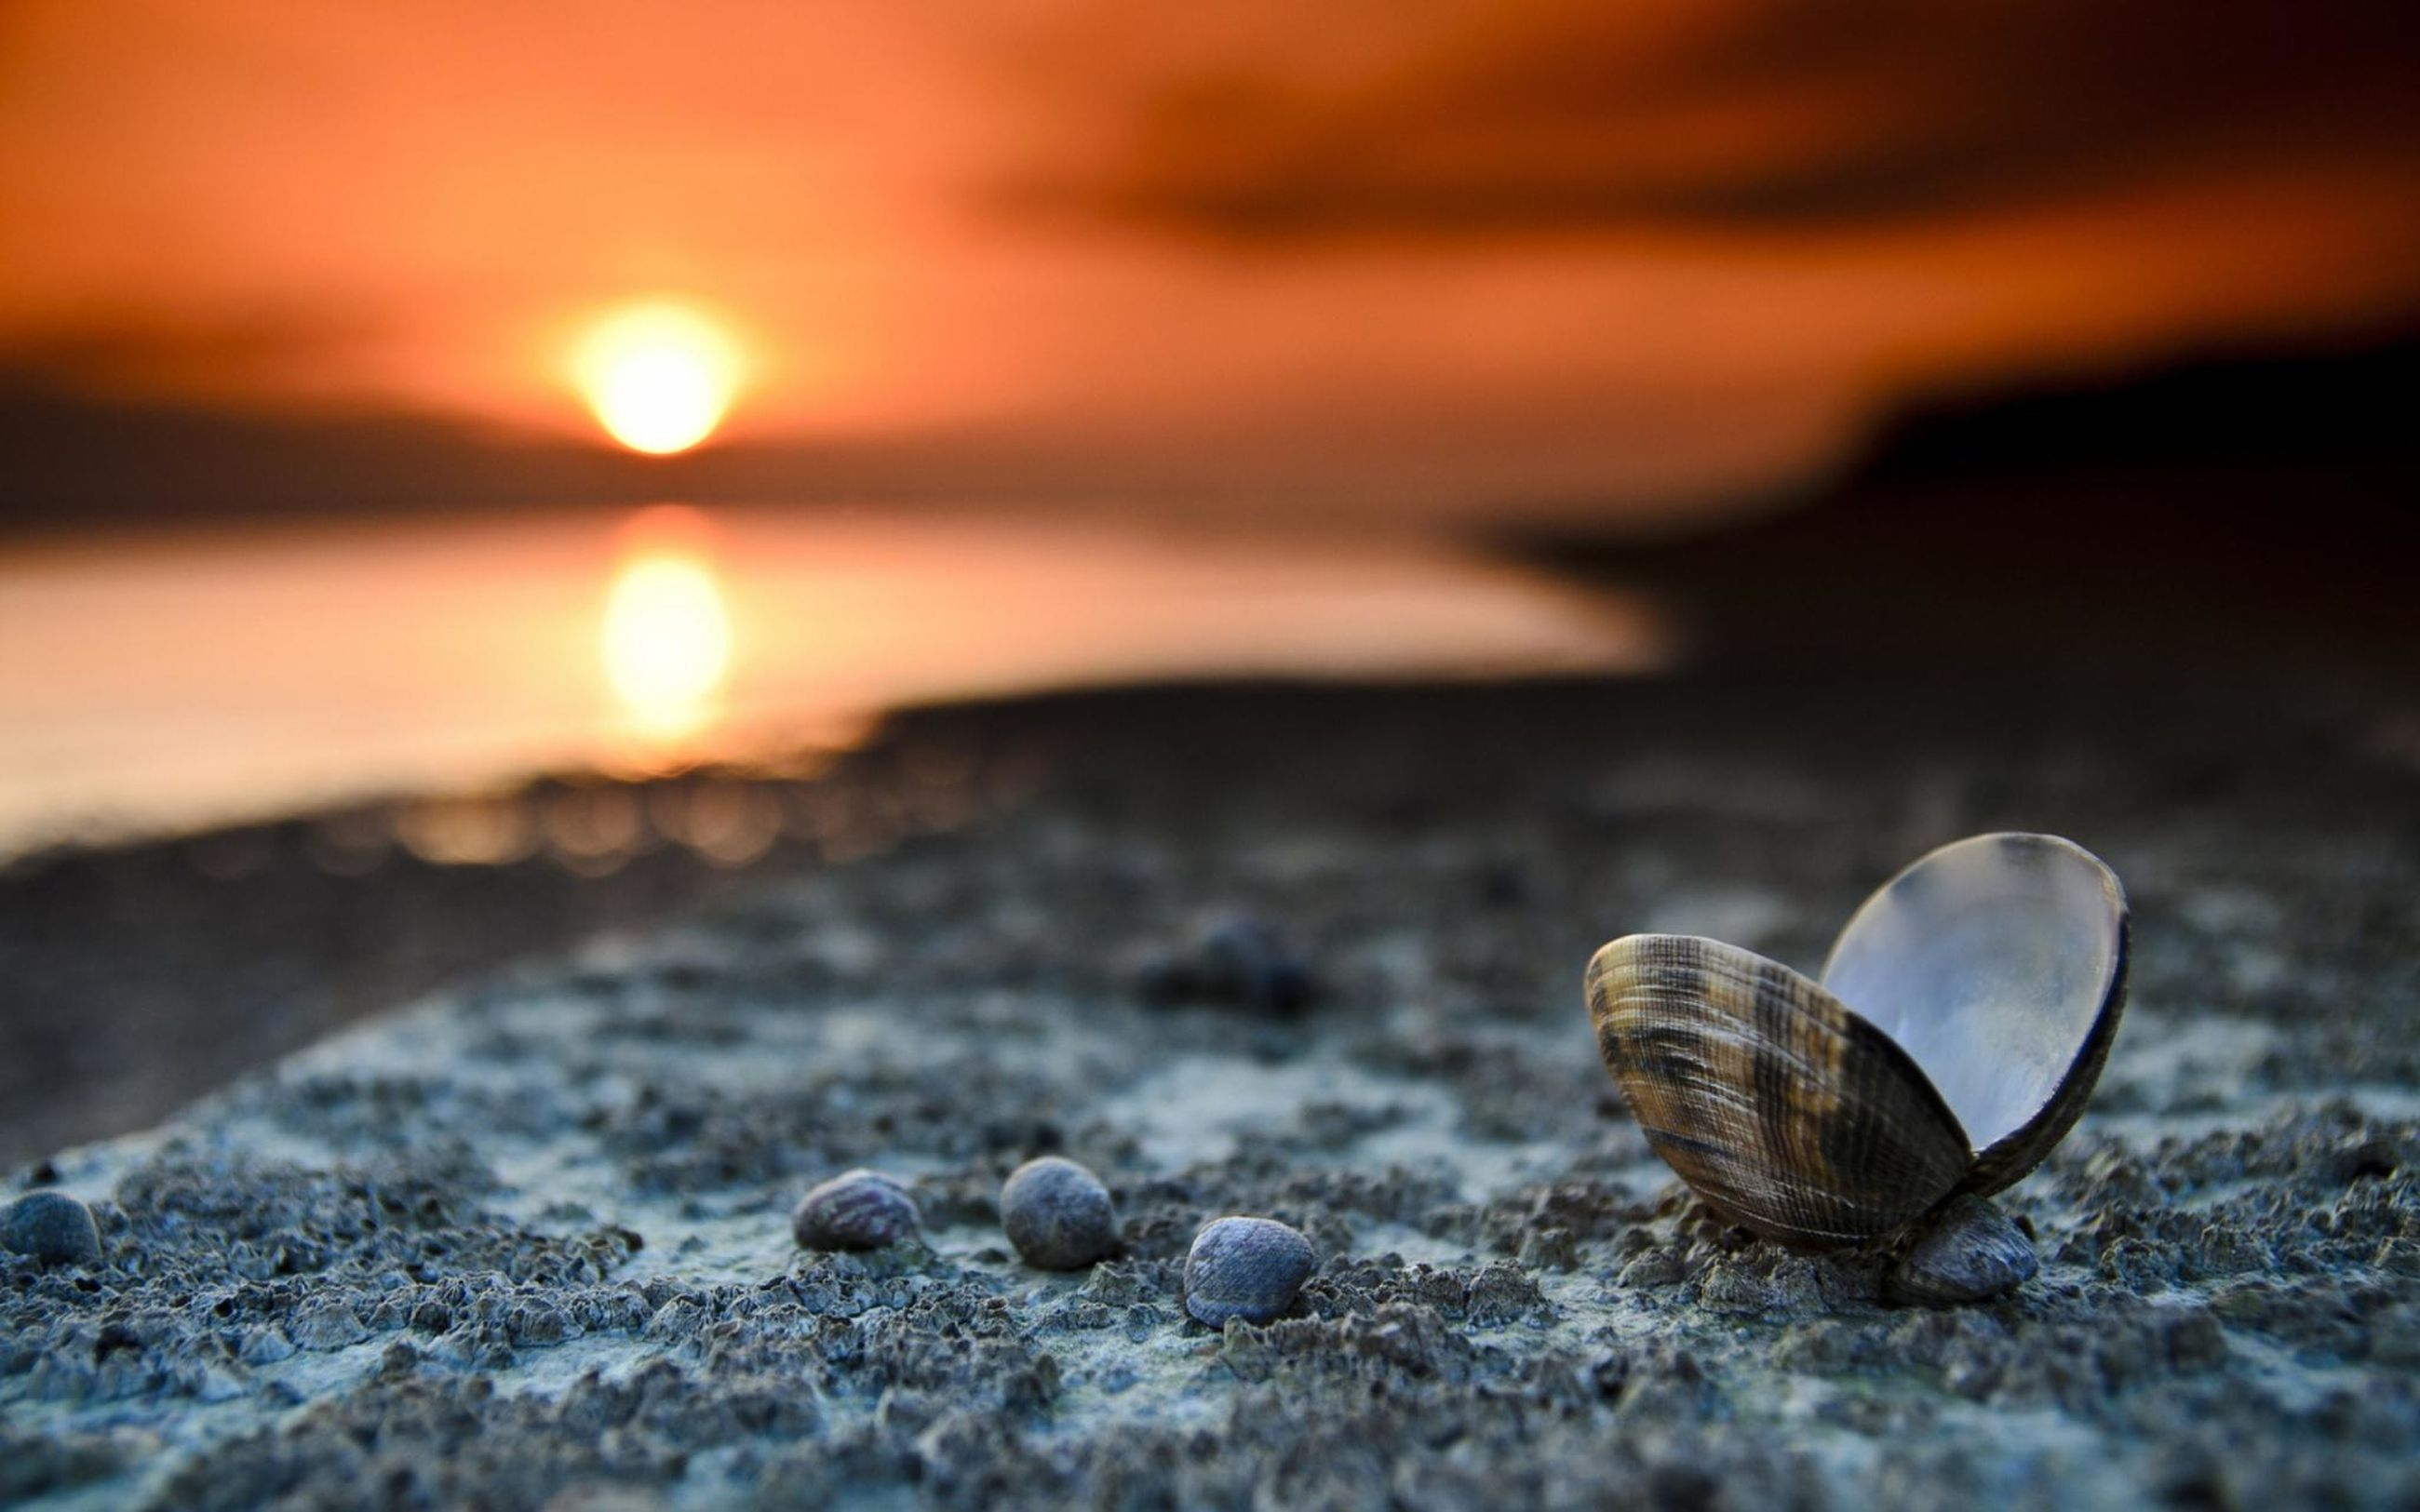 selective focus, close-up, focus on foreground, nature, animal themes, surface level, rock - object, beach, animals in the wild, sunset, outdoors, tranquility, one animal, wildlife, beauty in nature, stone - object, no people, sunlight, sand, pebble